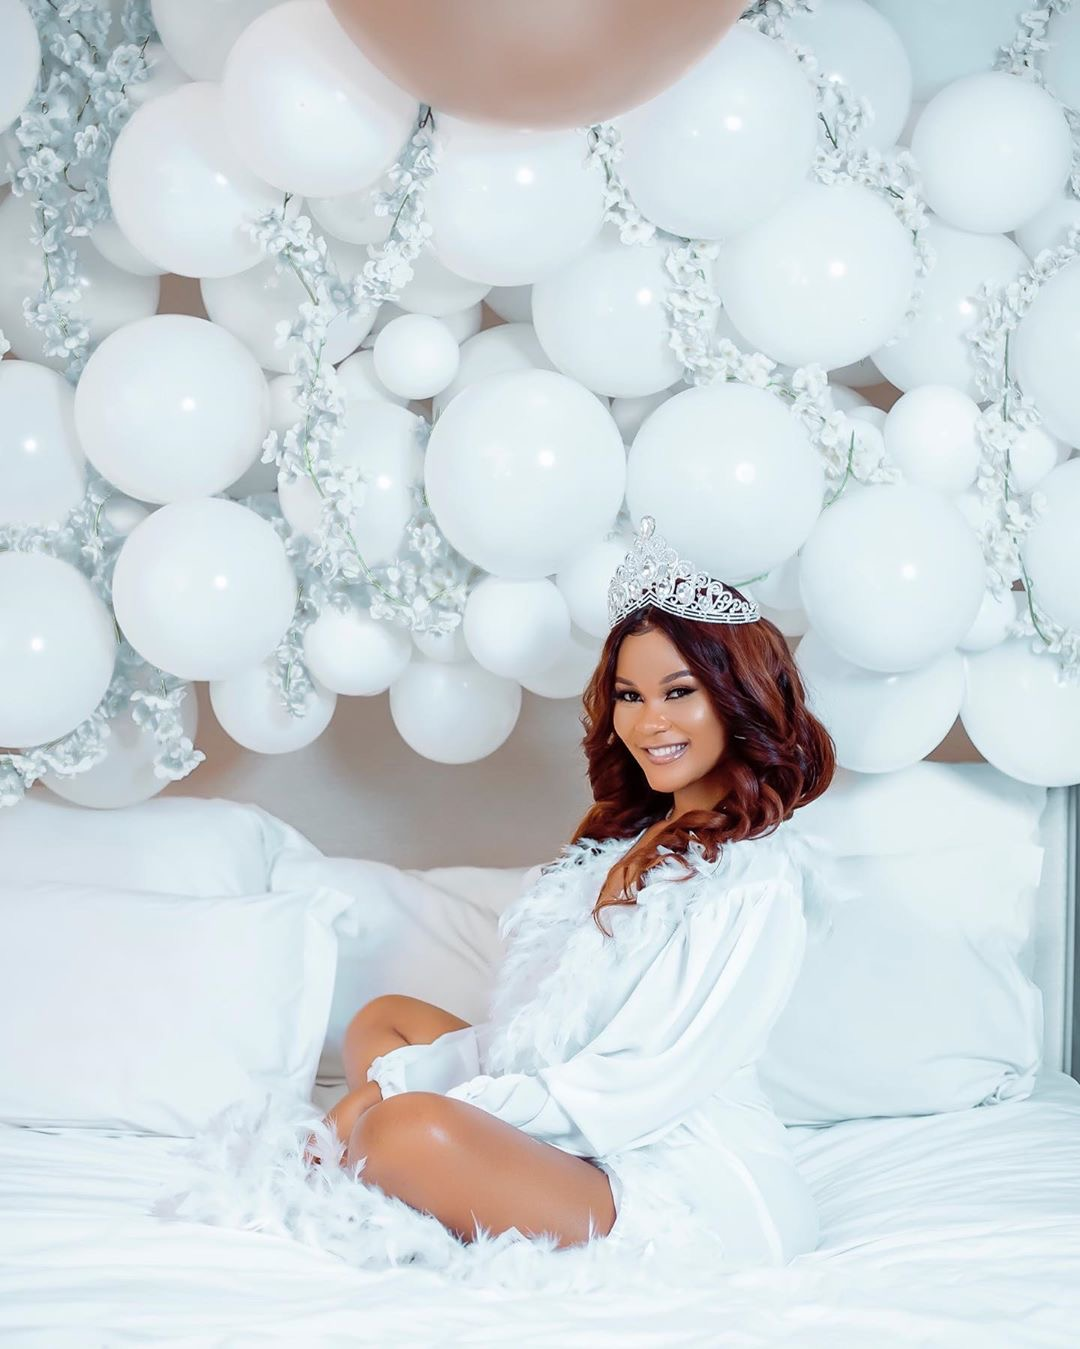 Hamisa Mobetto talks about her love life months after breaking up with Baby daddy, Diamond Platnumz